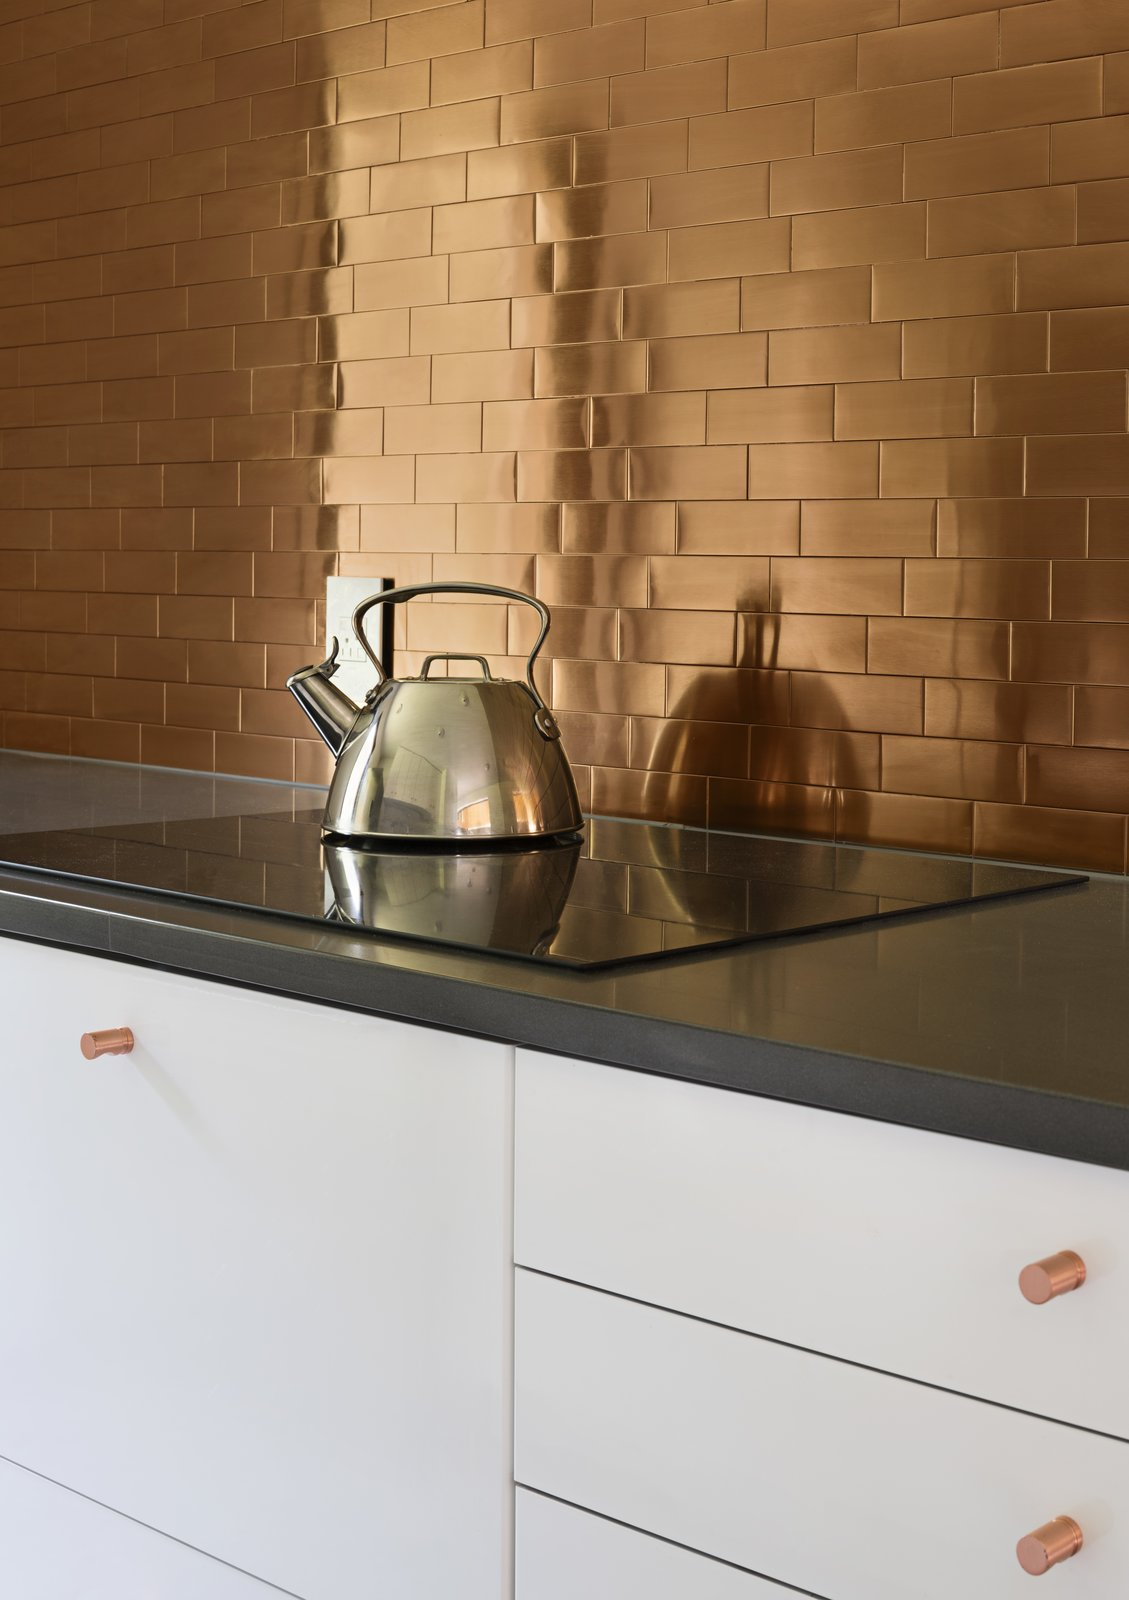 copper stainless steel kitchen backsplash